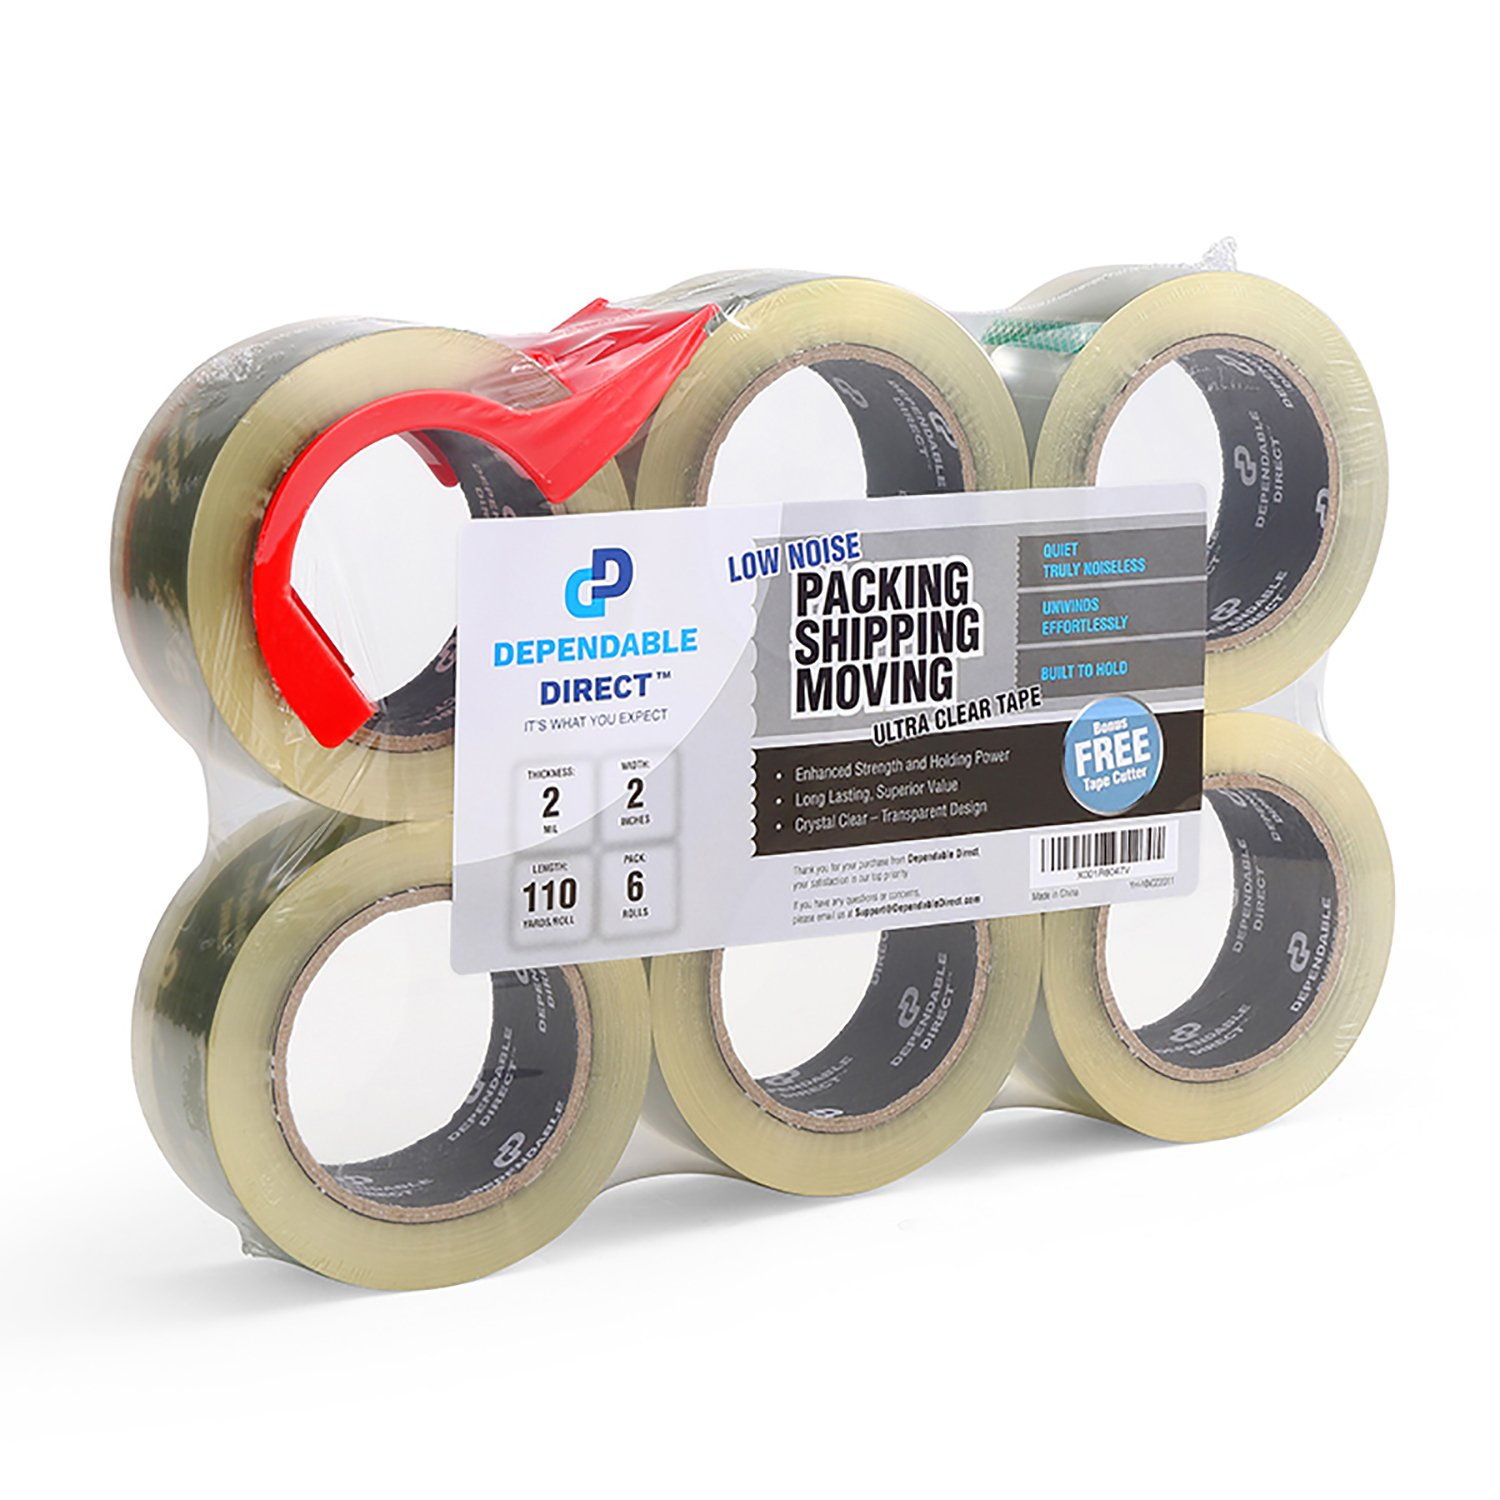 Ultra Quiet, Industrial Grade Clear Packing Tape (6 Rolls) - 110 Yards per Roll - 2'' Wide x 2 mil Thick, Acrylic Adhesive Heavy Duty Tape for Box Office Moving Packaging Shipping, Free Tape Cutter